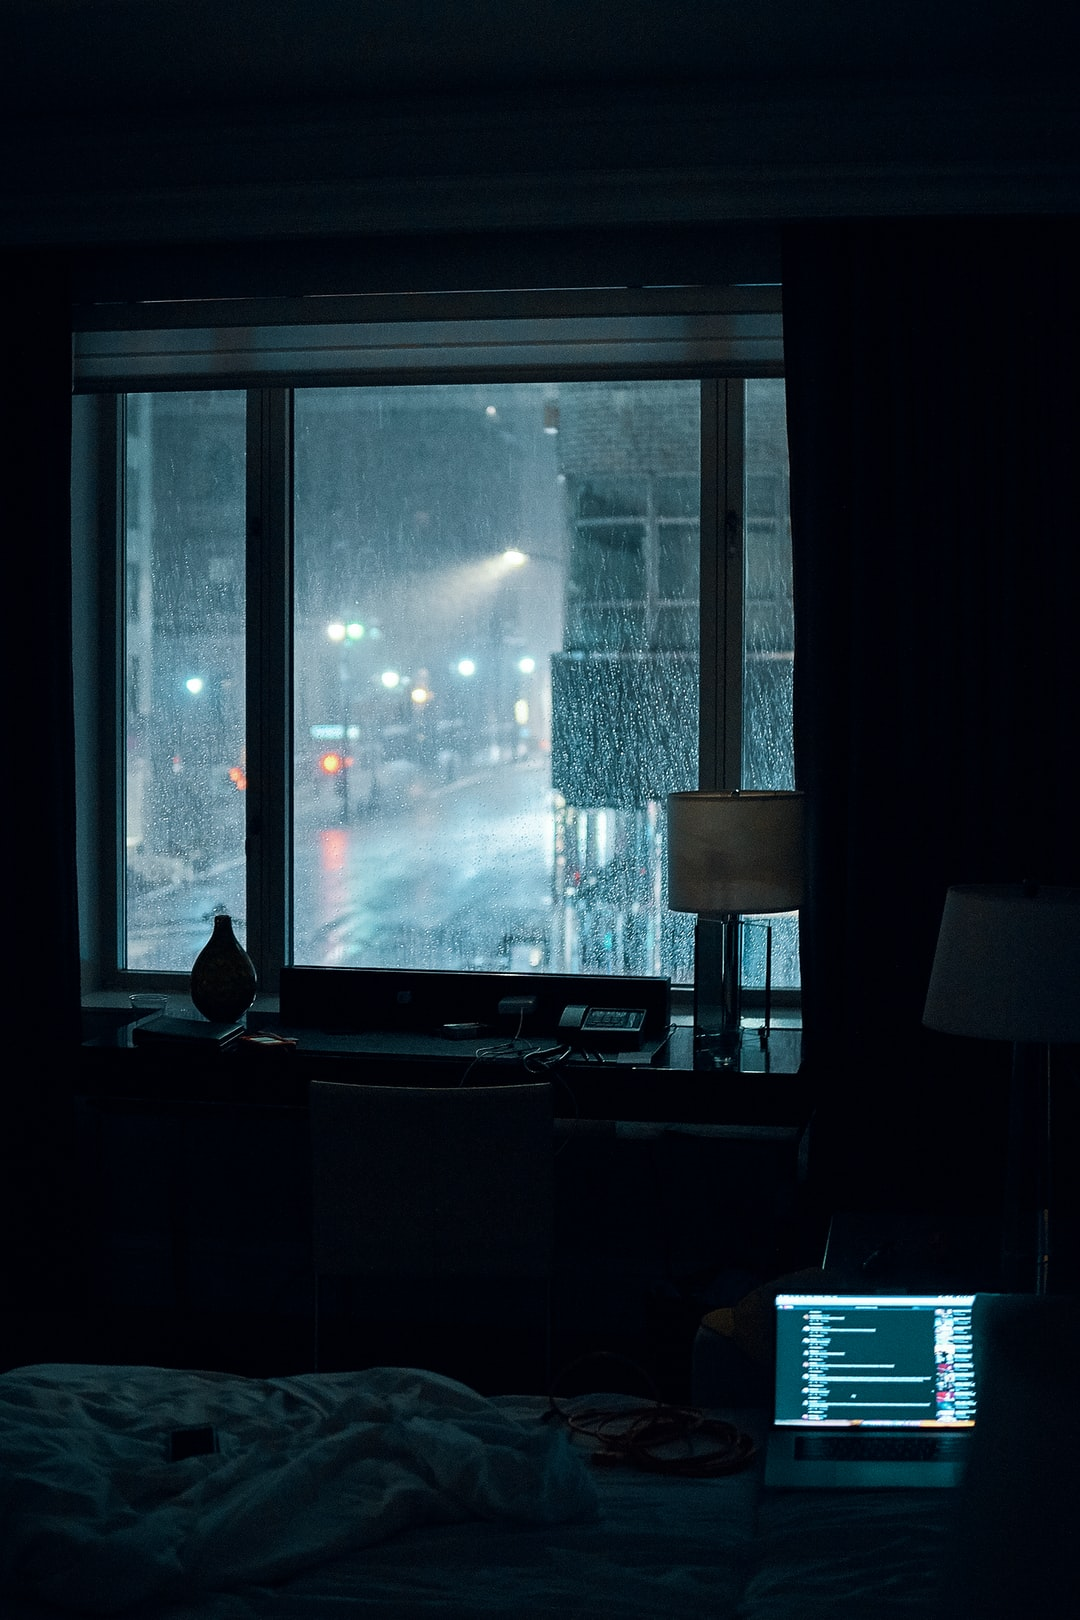 Rainy Nights In Nyc Photo By Gian Cescon Giancescon On